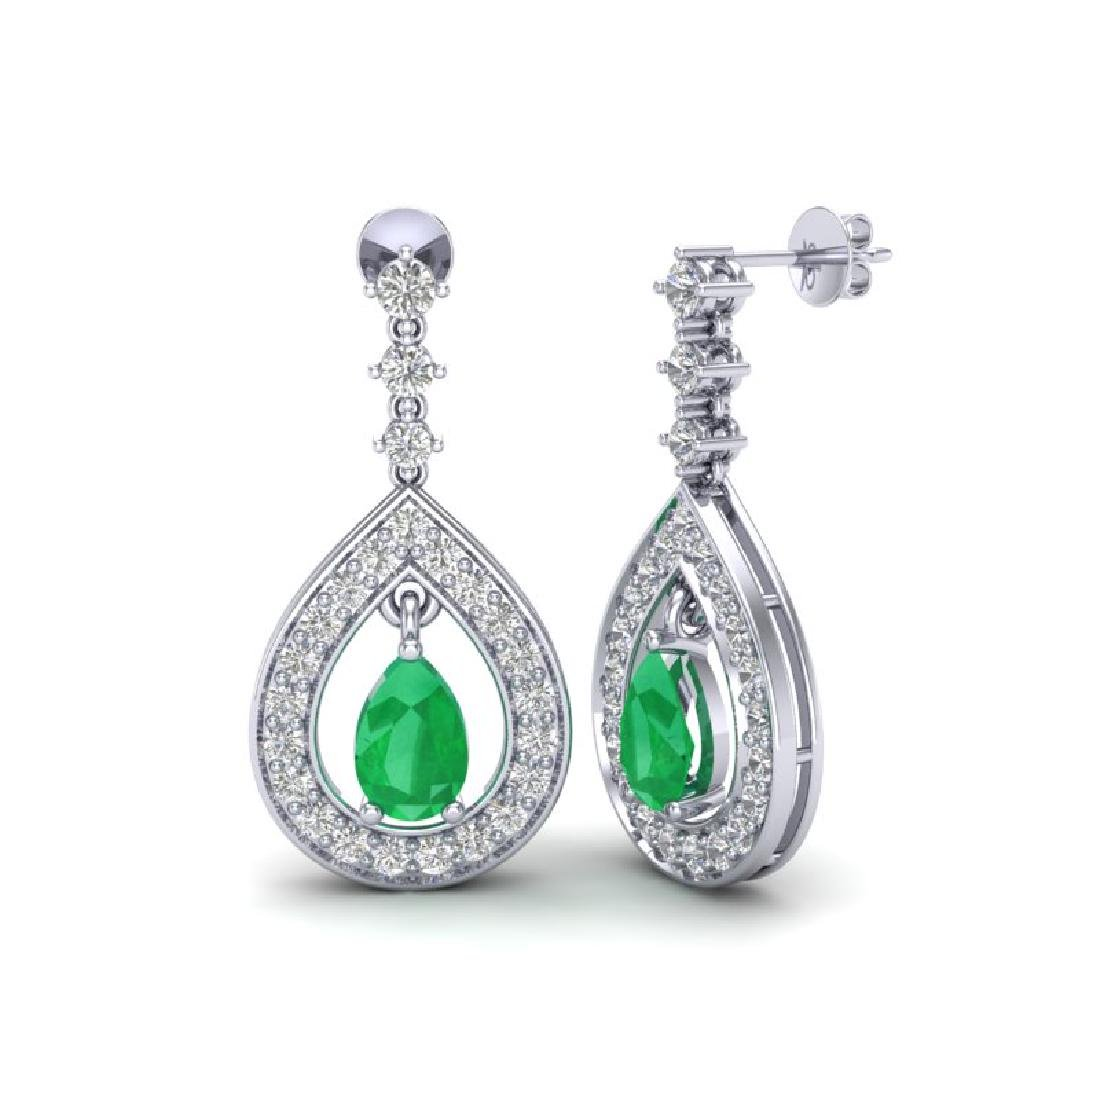 2.25 CTW Emerald & Micro Pave VS/SI Diamond Earrings - 2